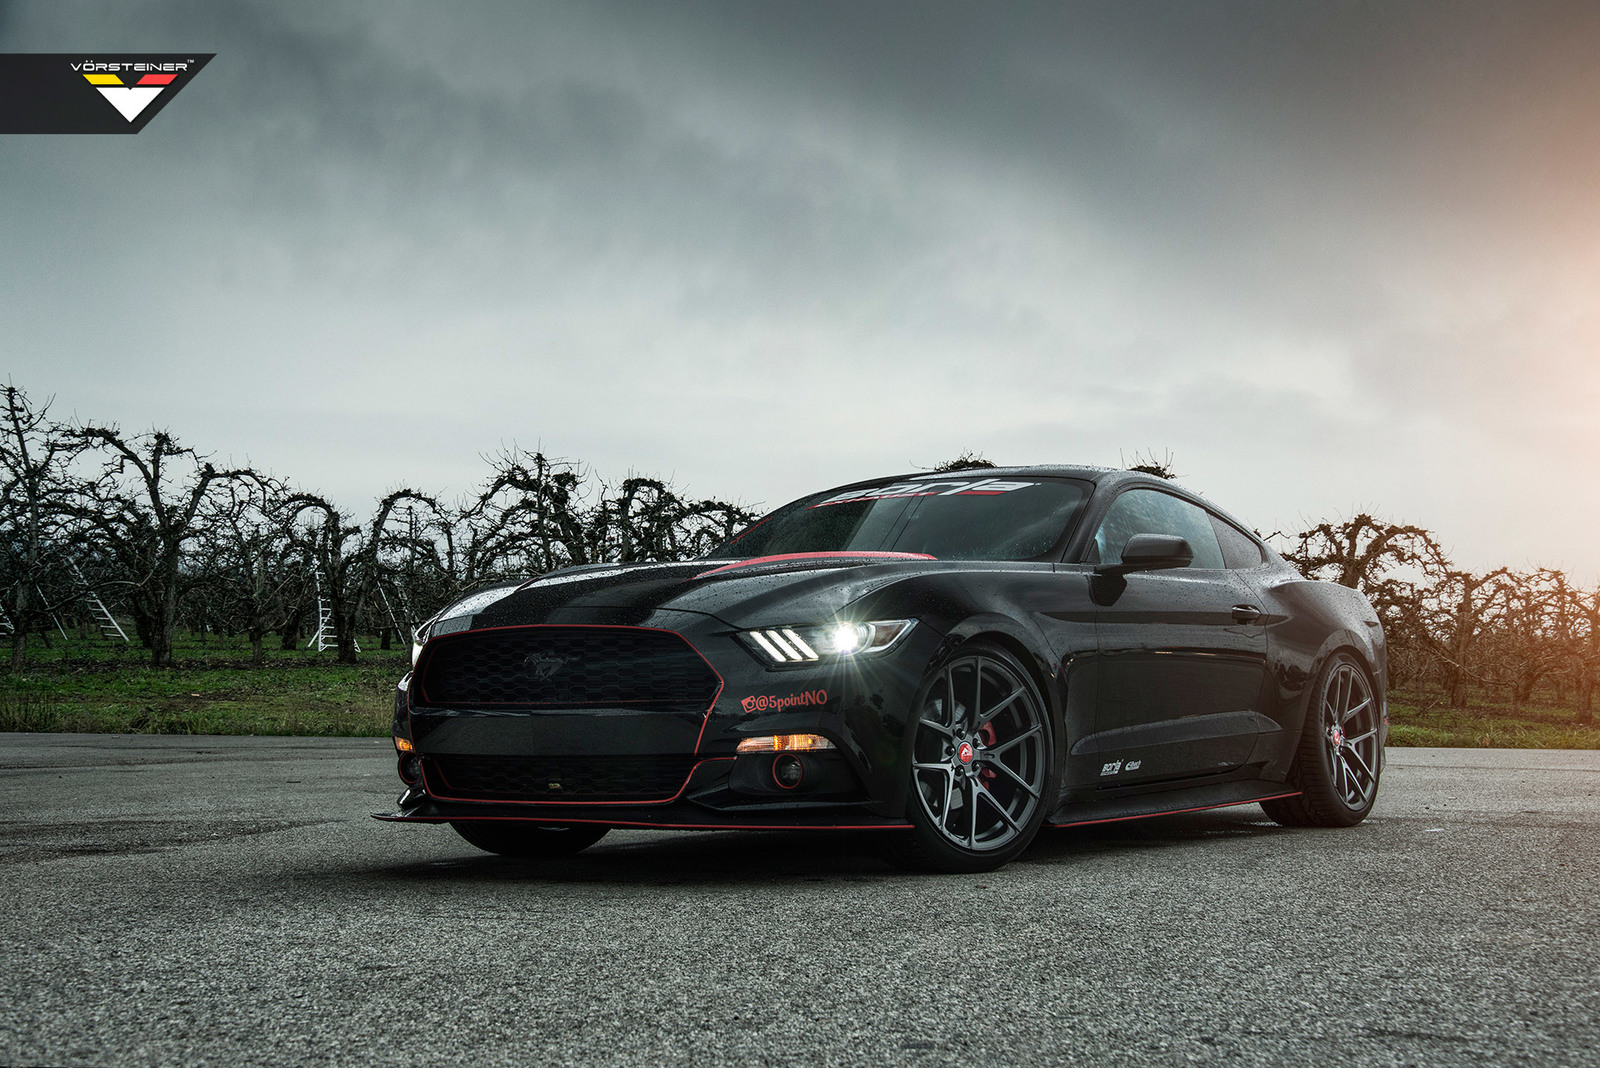 ford-mustang-vorsteiner-v-ff-101-flow-forged-wheels_23283440186_o.jpg